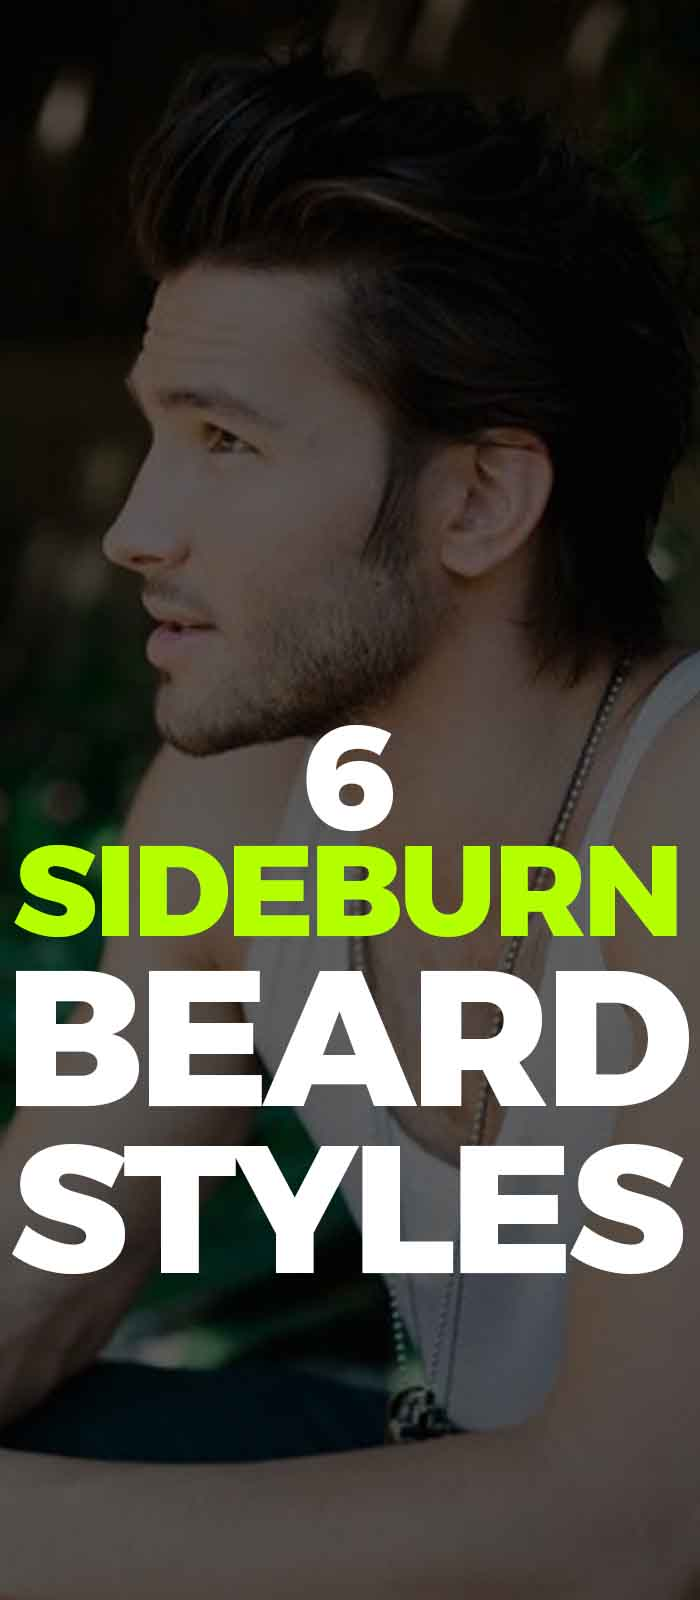 Medium Length Sideburn style for men!